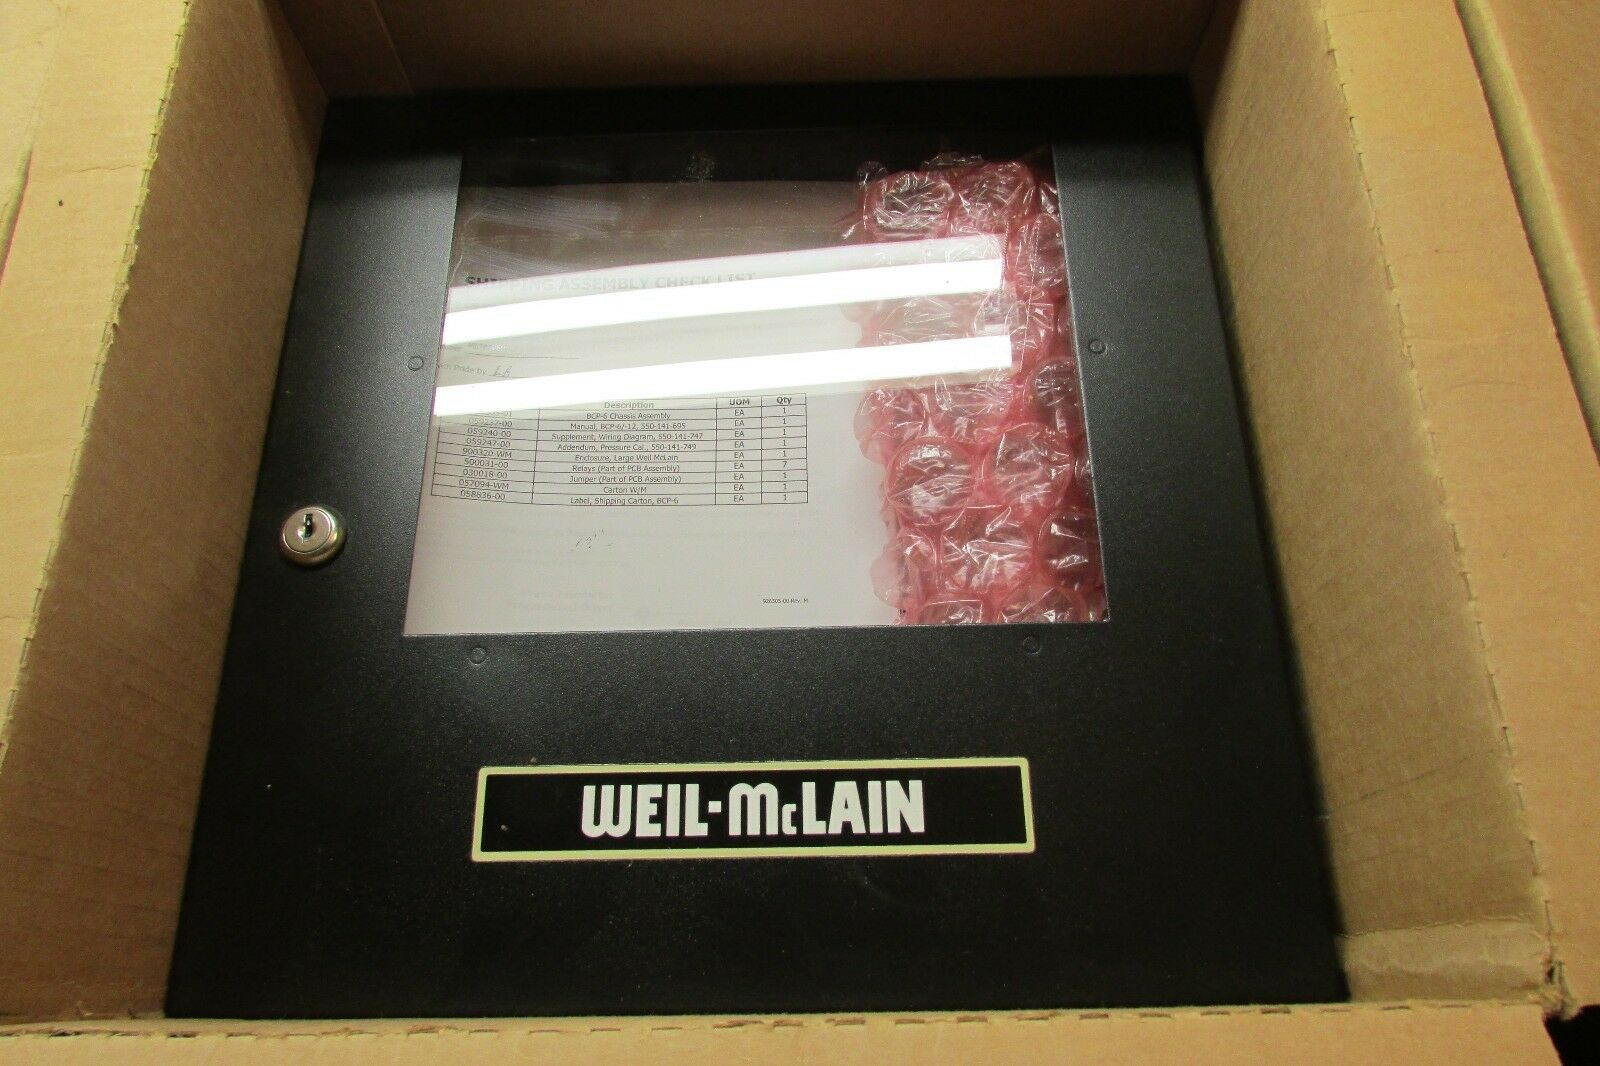 Weil Mclain Boiler Control Panel Sequencer Bcp 6 115vac 60hz Ebay Schematic Diagram Norton Secured Powered By Verisign